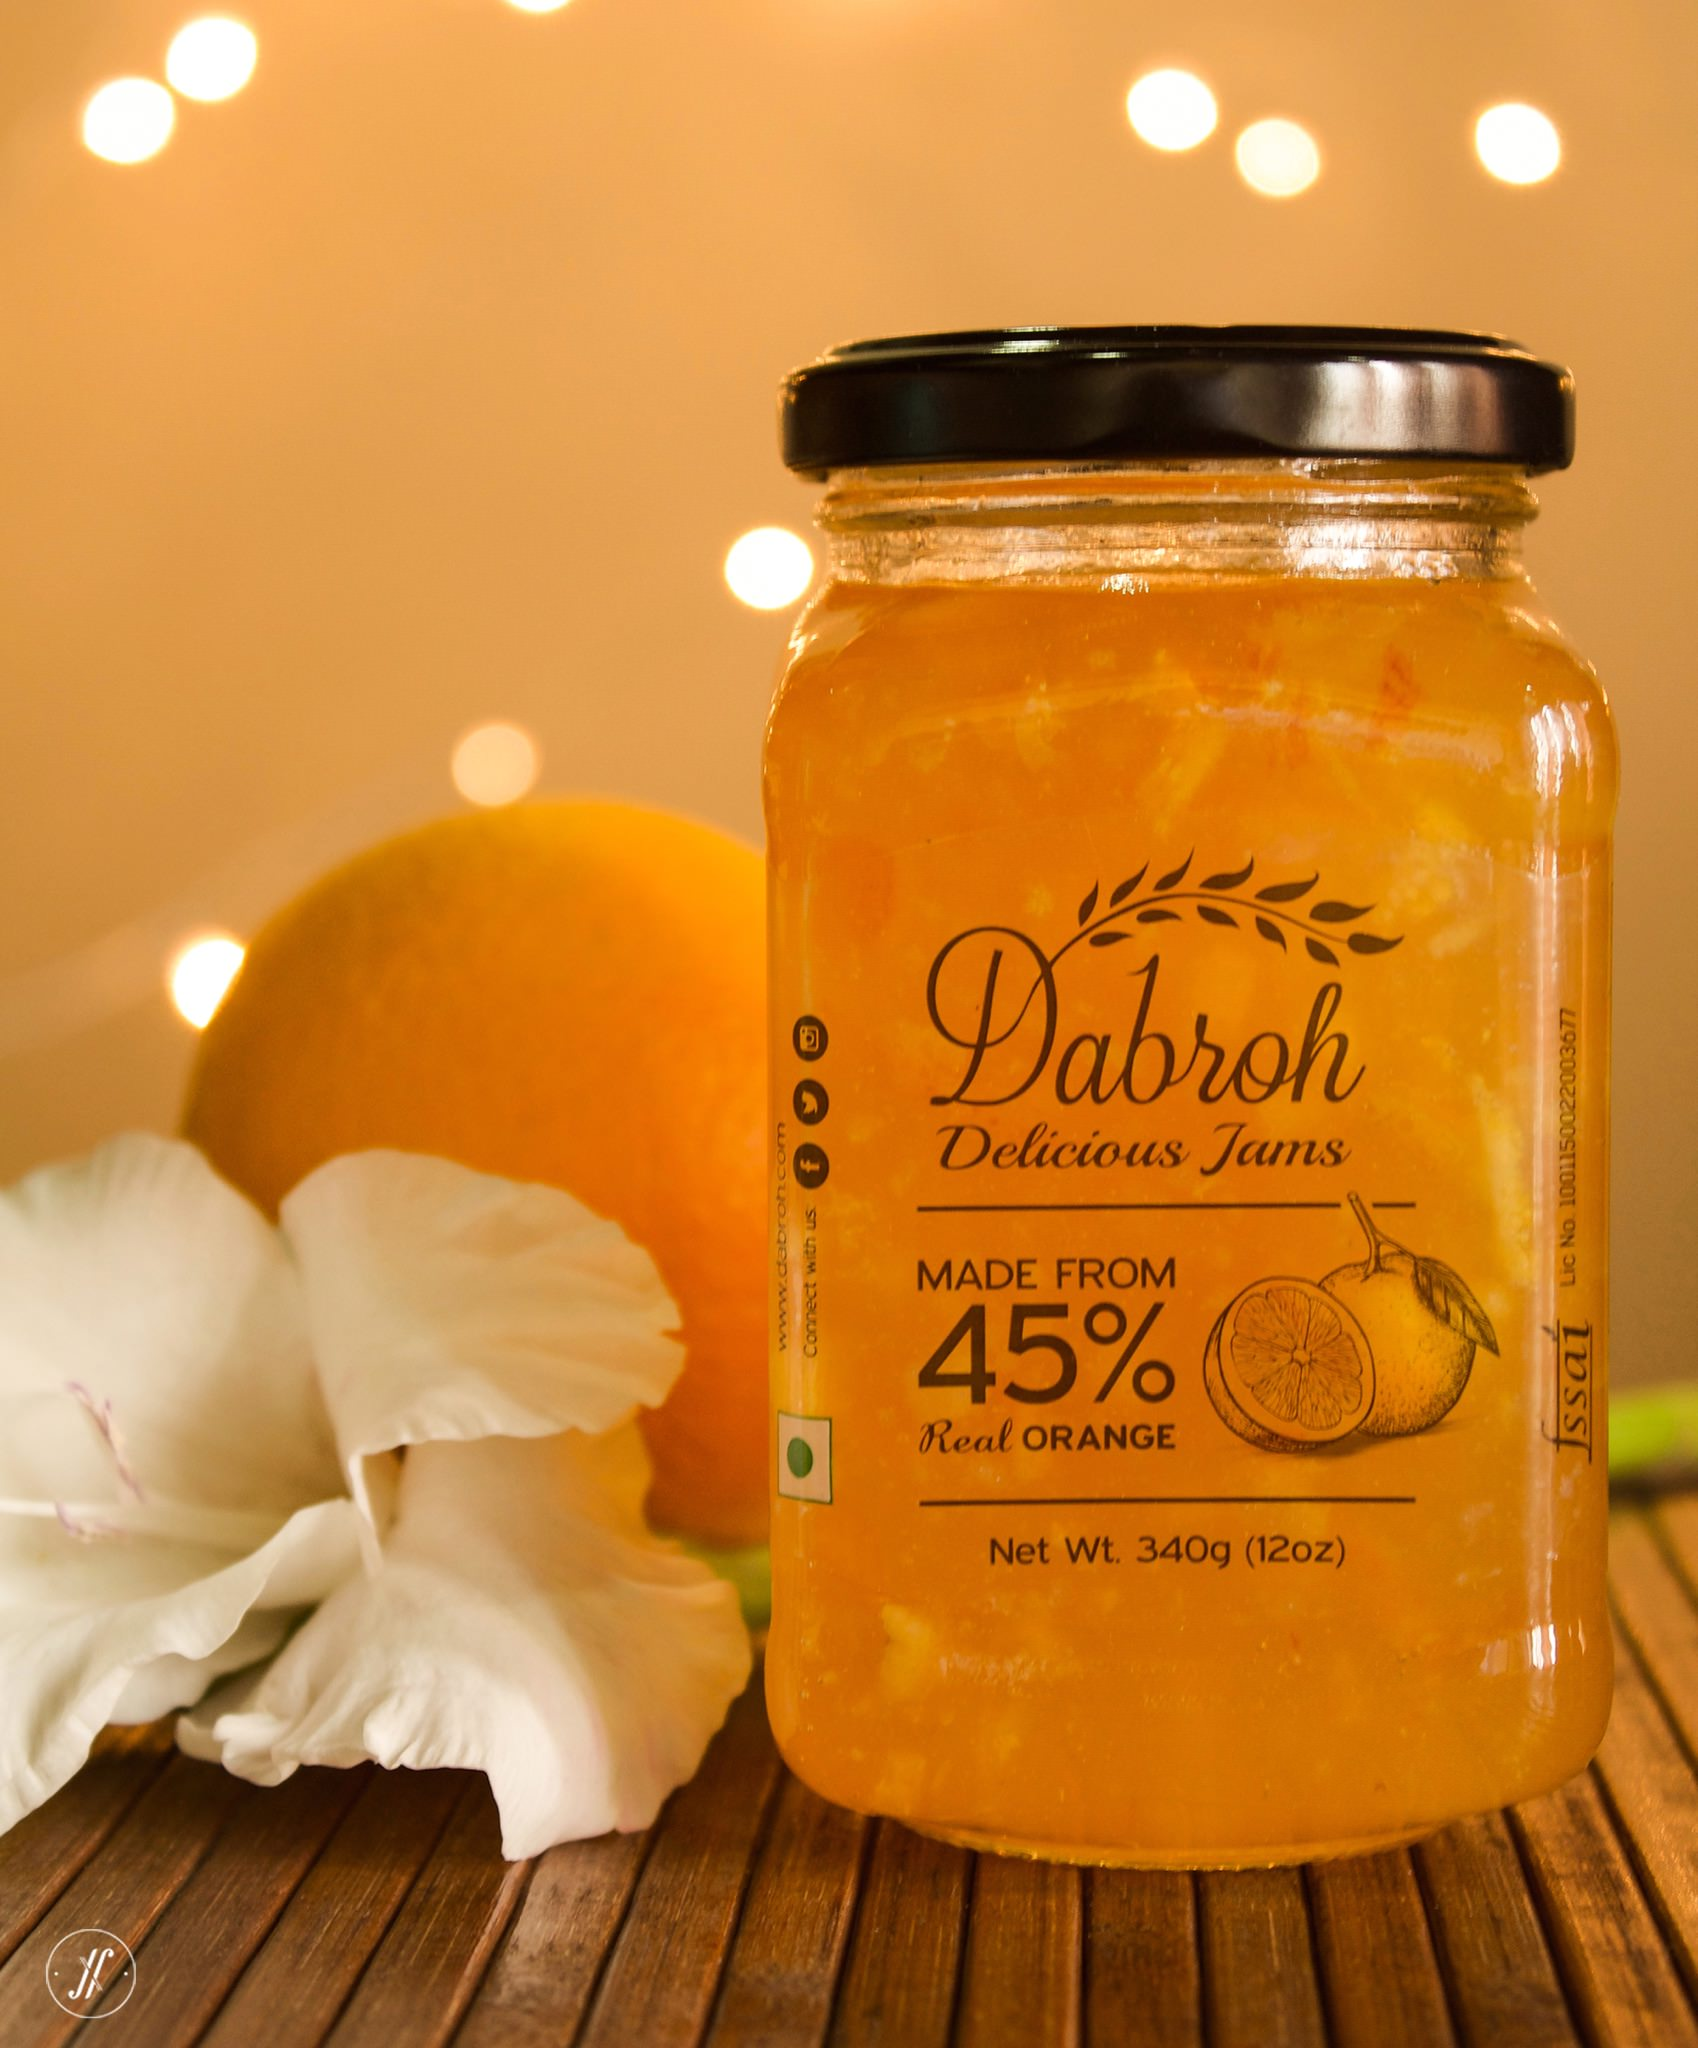 Dabroh-packaging-design-yellow-fishes-branding-agency-Consultancy-design-agency-mumbai-jams-best-packaging-design-logo-design-range-shot-orange-packaging-design